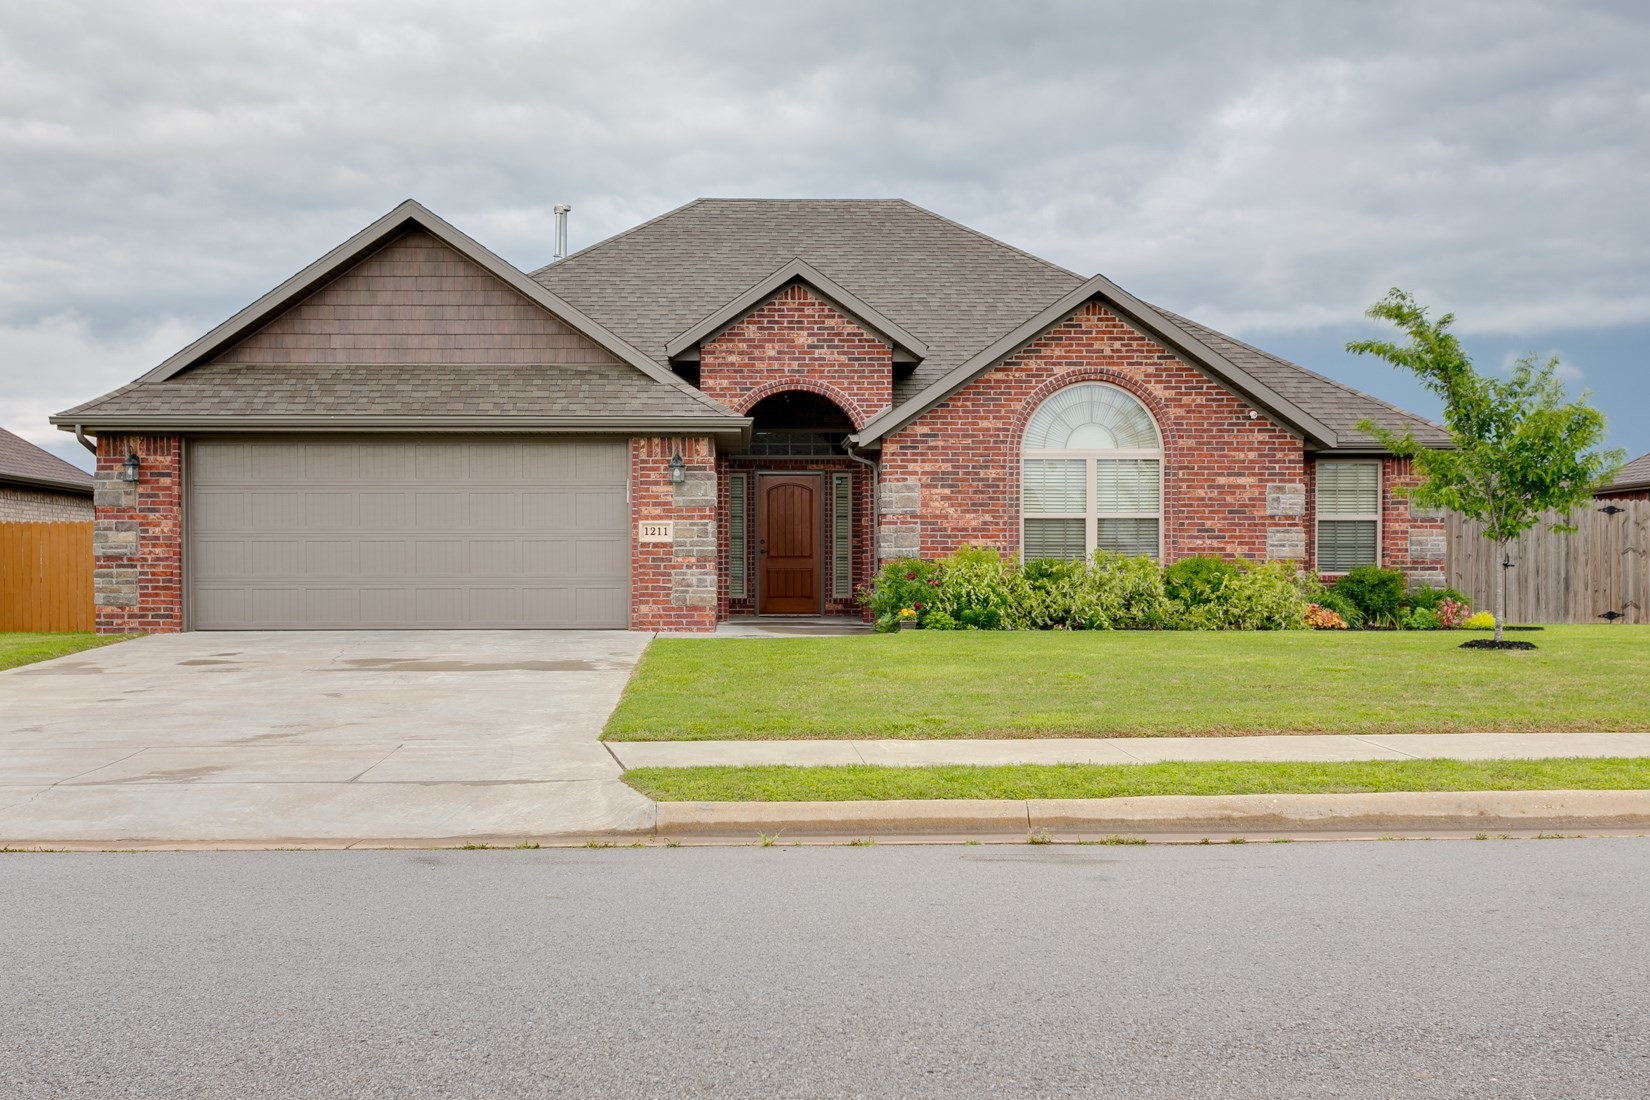 Centerton home near schools and short commute to Bentonville